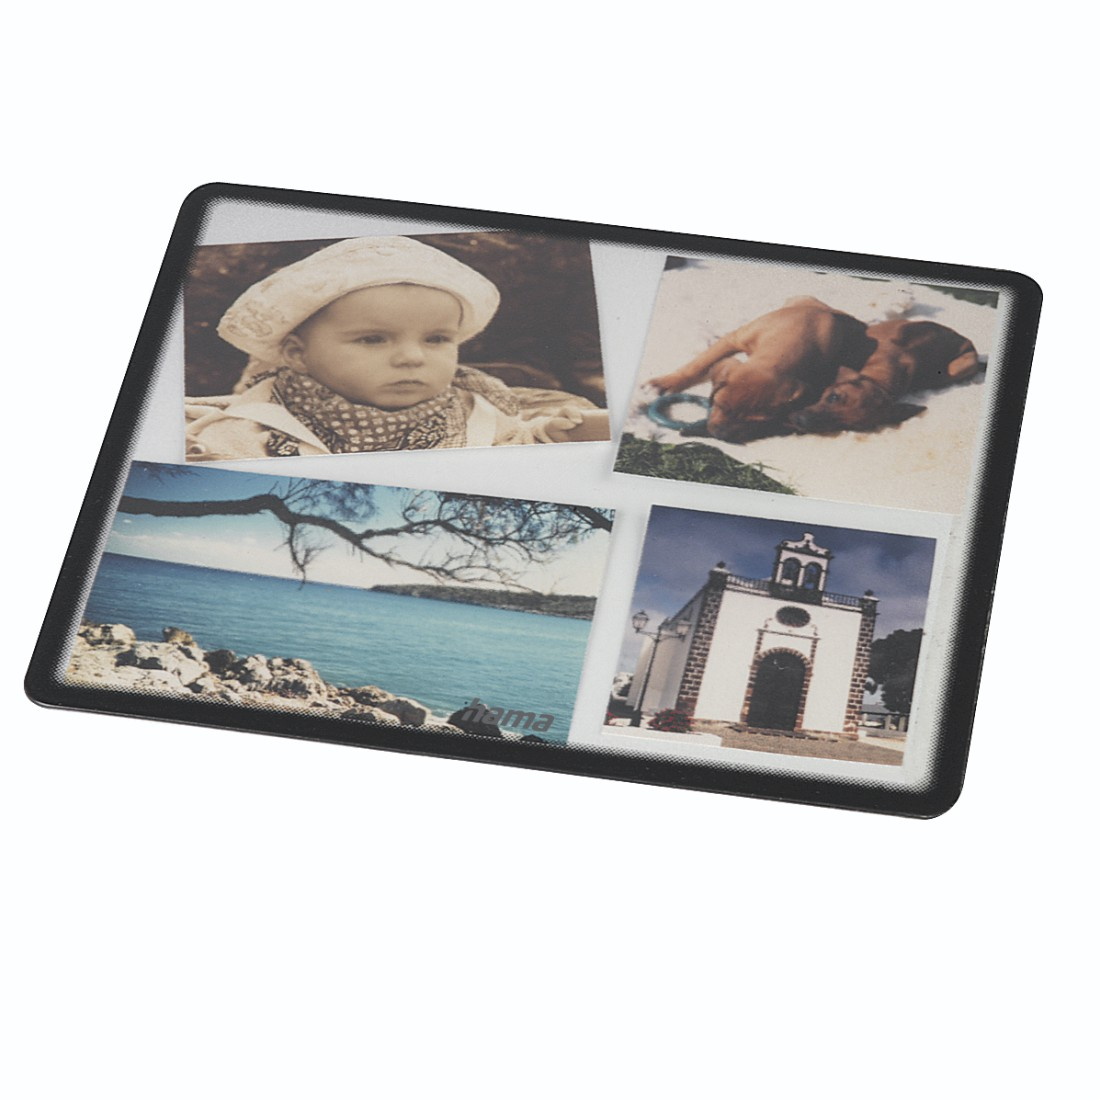 abx5 High-Res Image 5 - Hama, Photo Pad